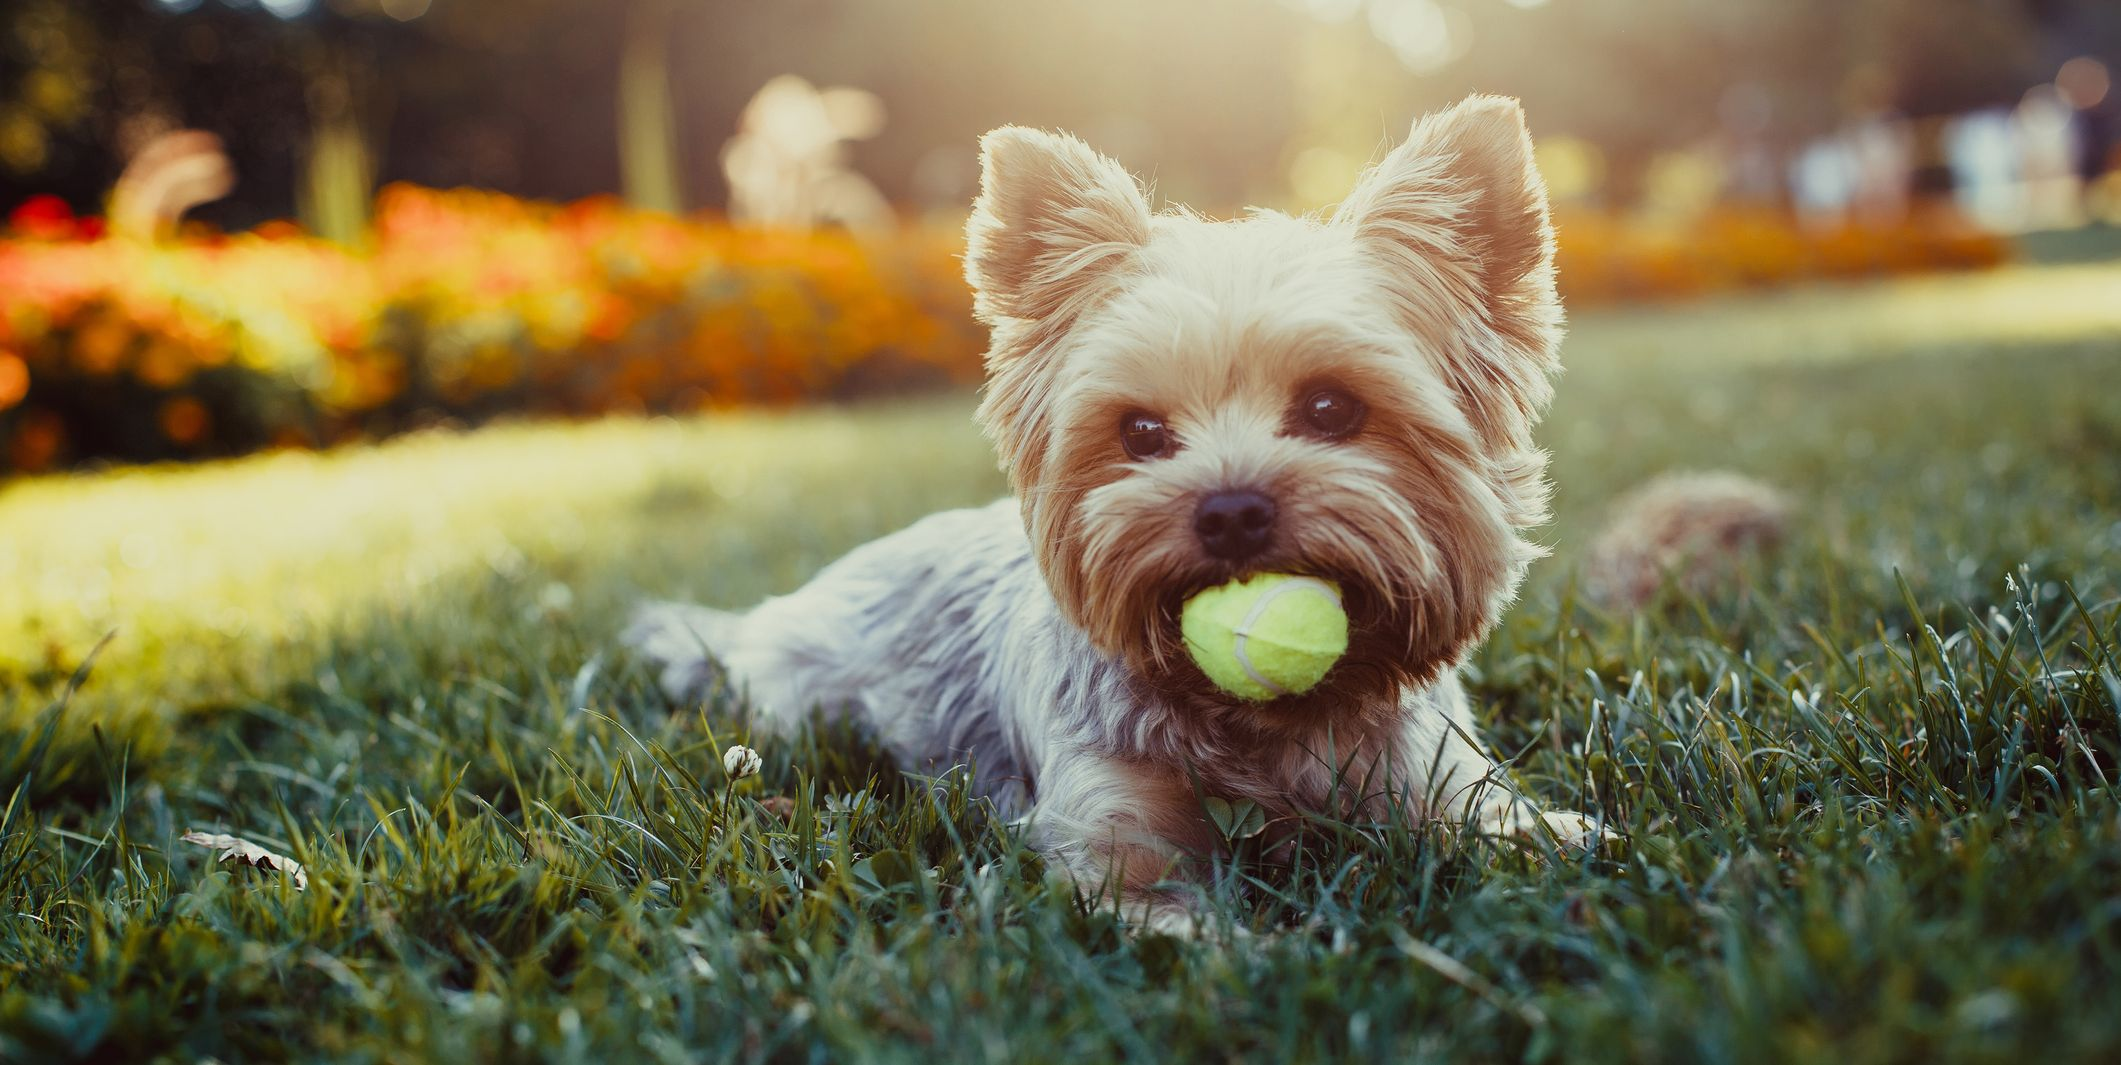 20 Small Dog Breeds That Are Perfect For Any Home